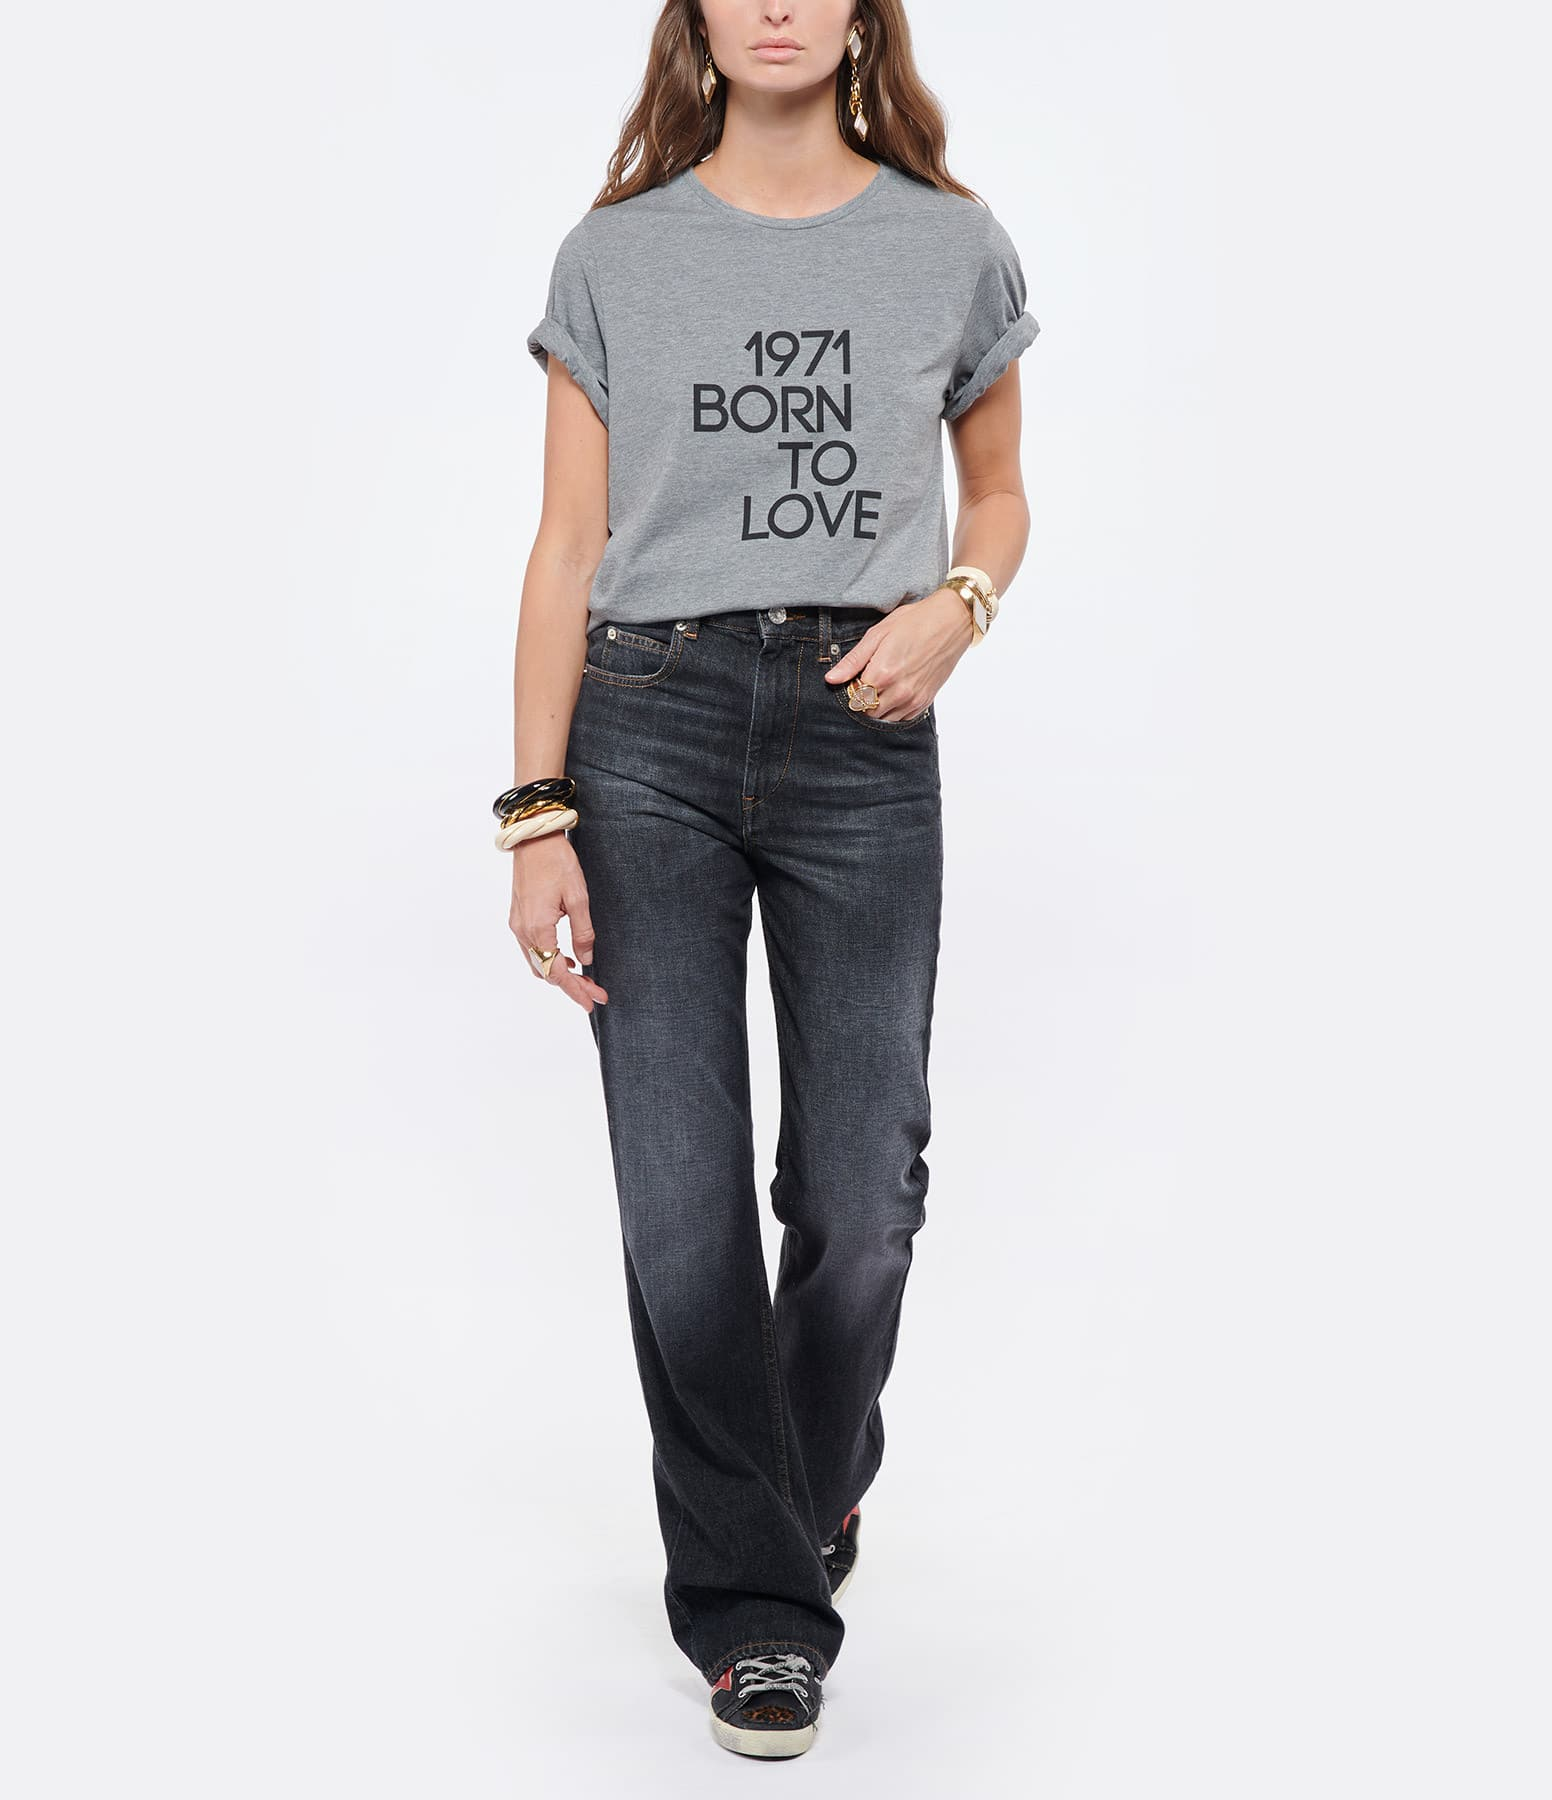 JEANNE VOULAND - Tee-shirt Goz Born To Love Gris